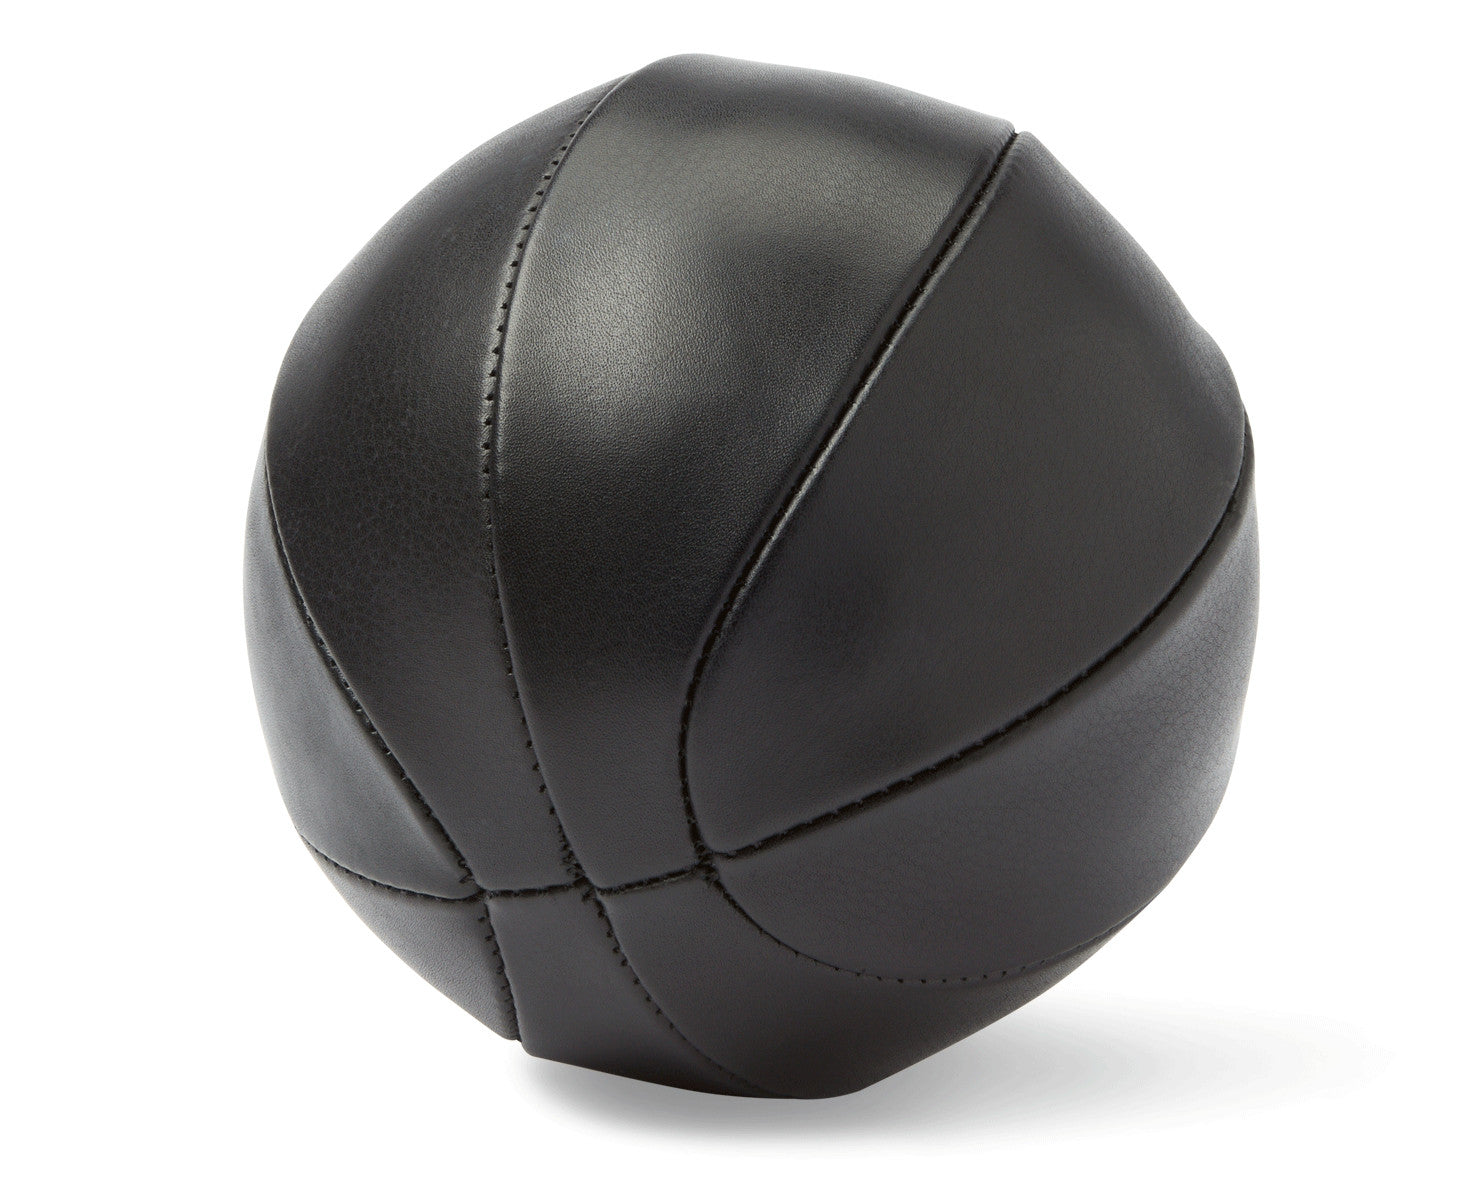 INDOOR MINI BASKETBALL | KILLSPENCER® - Black Leather